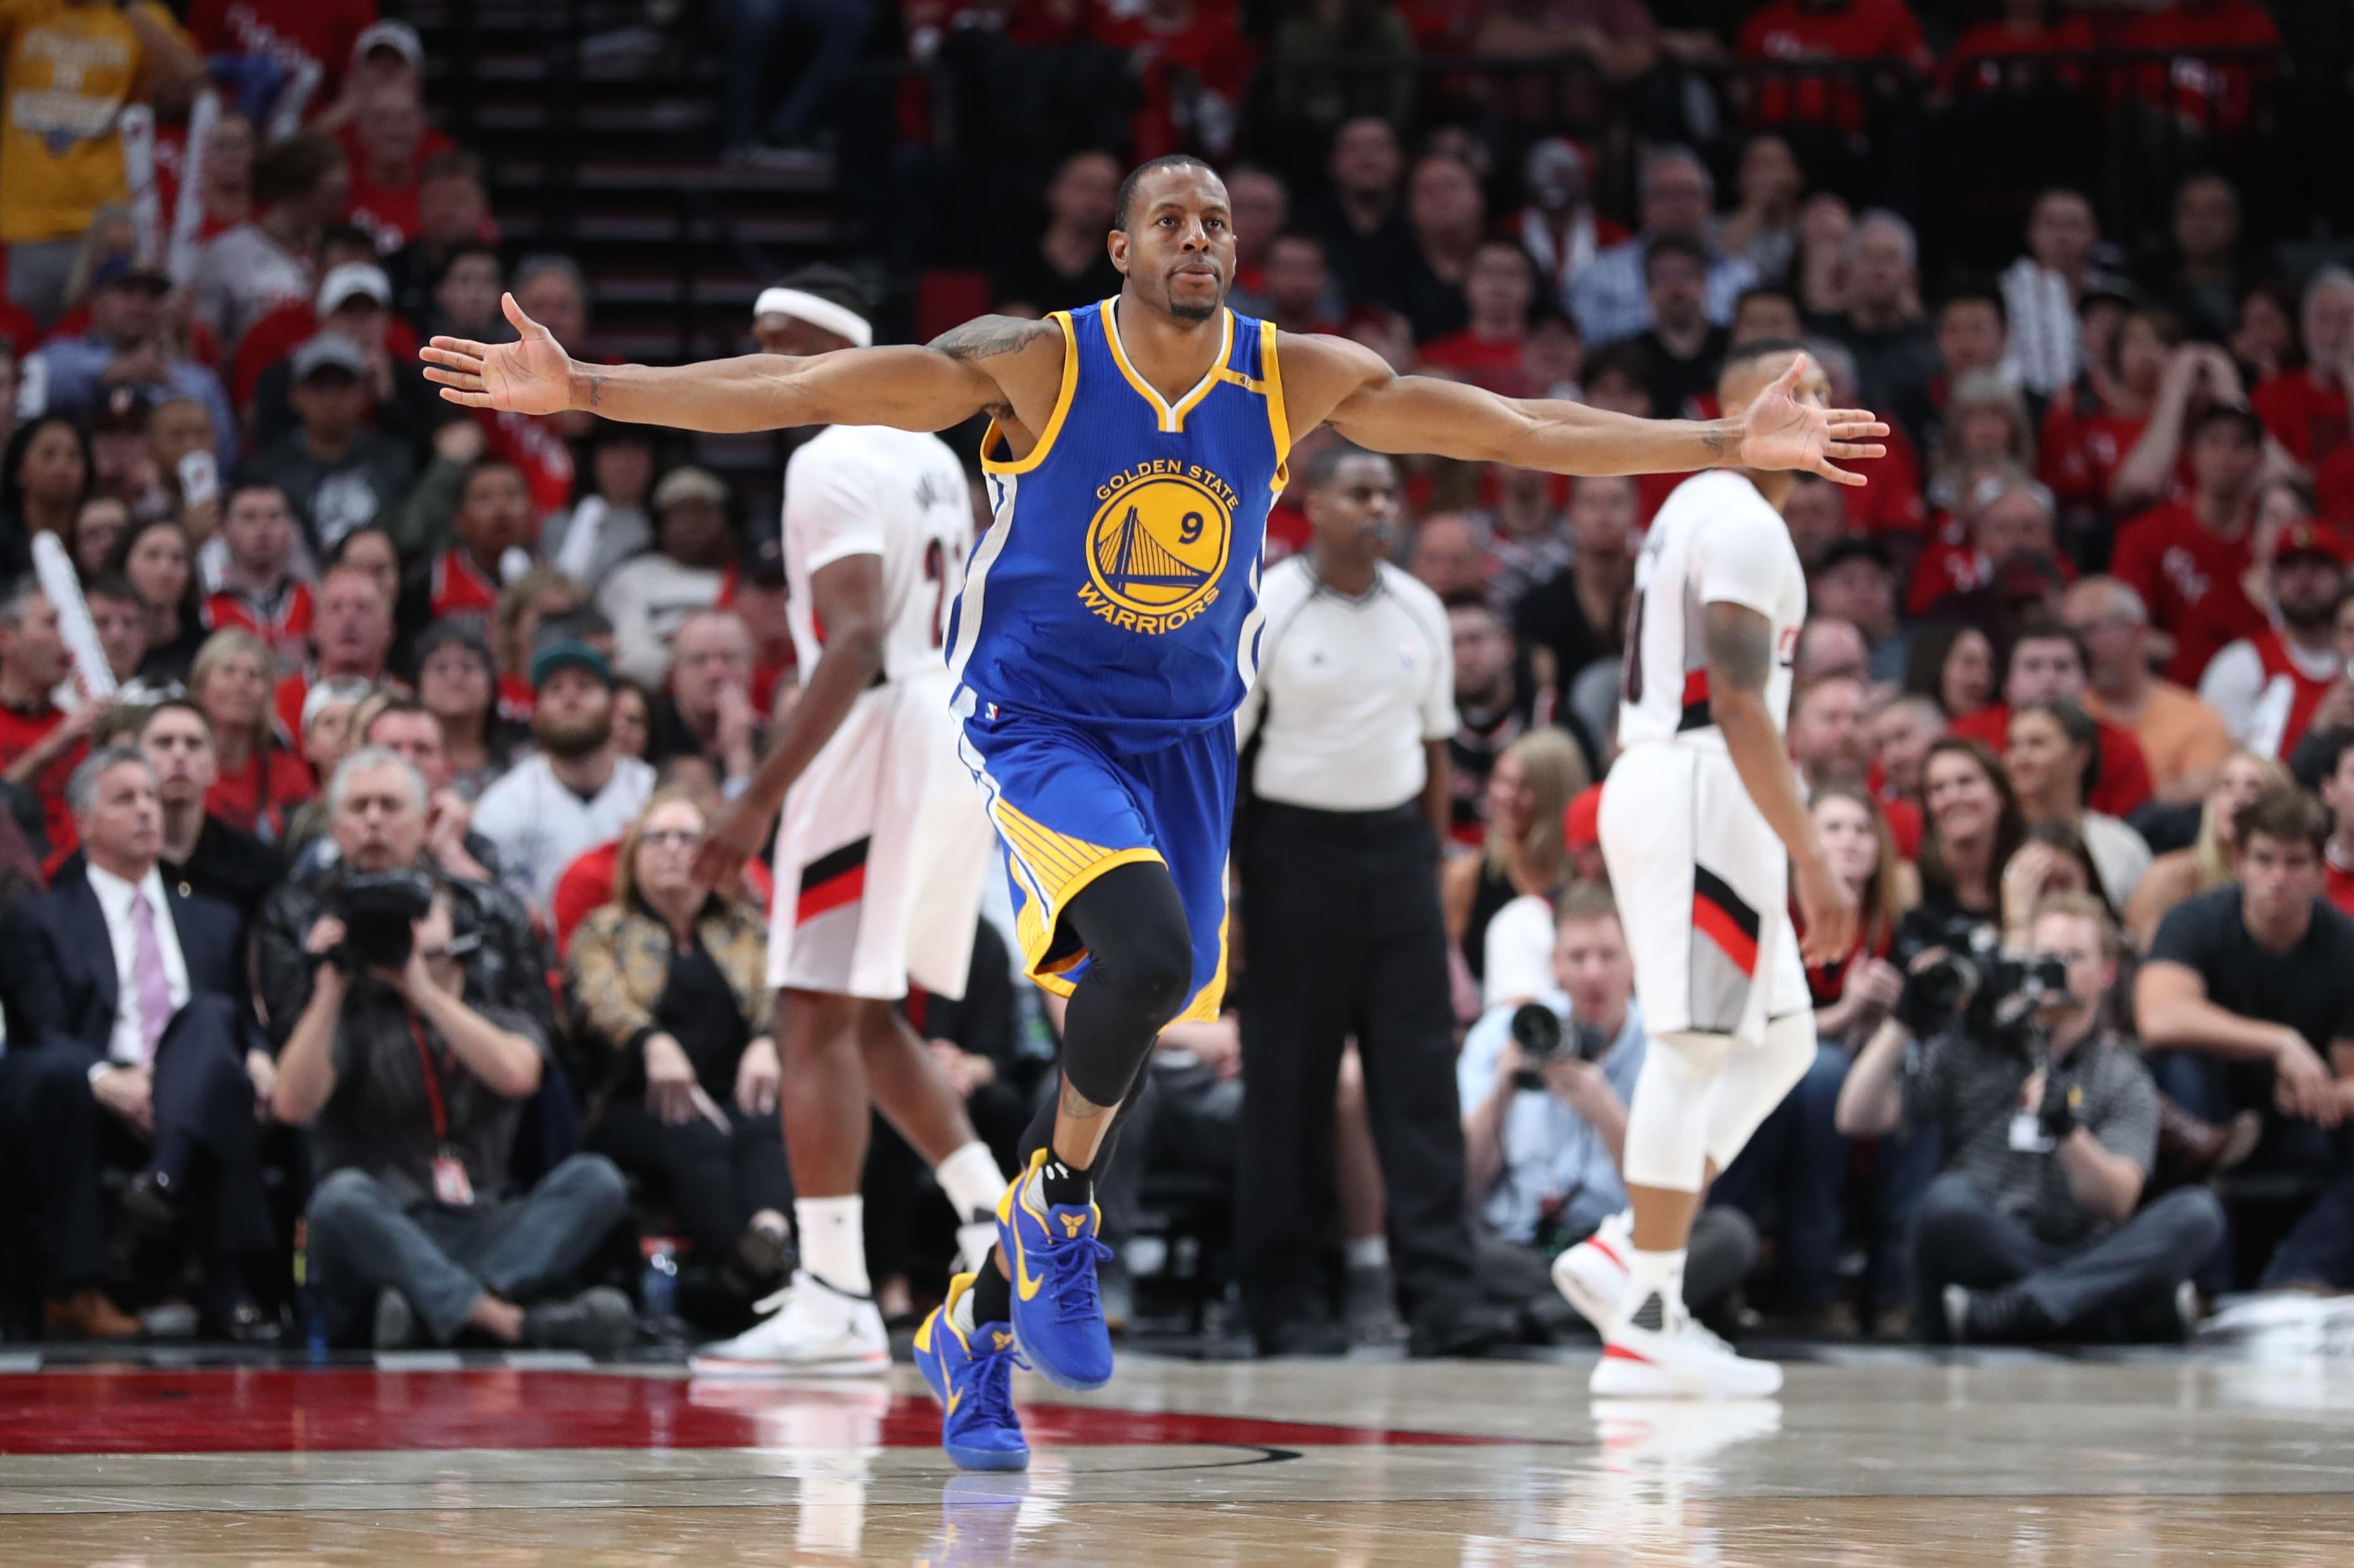 Warriors rally to take 3-0 series lead over Trail Blazers with 119-113 win